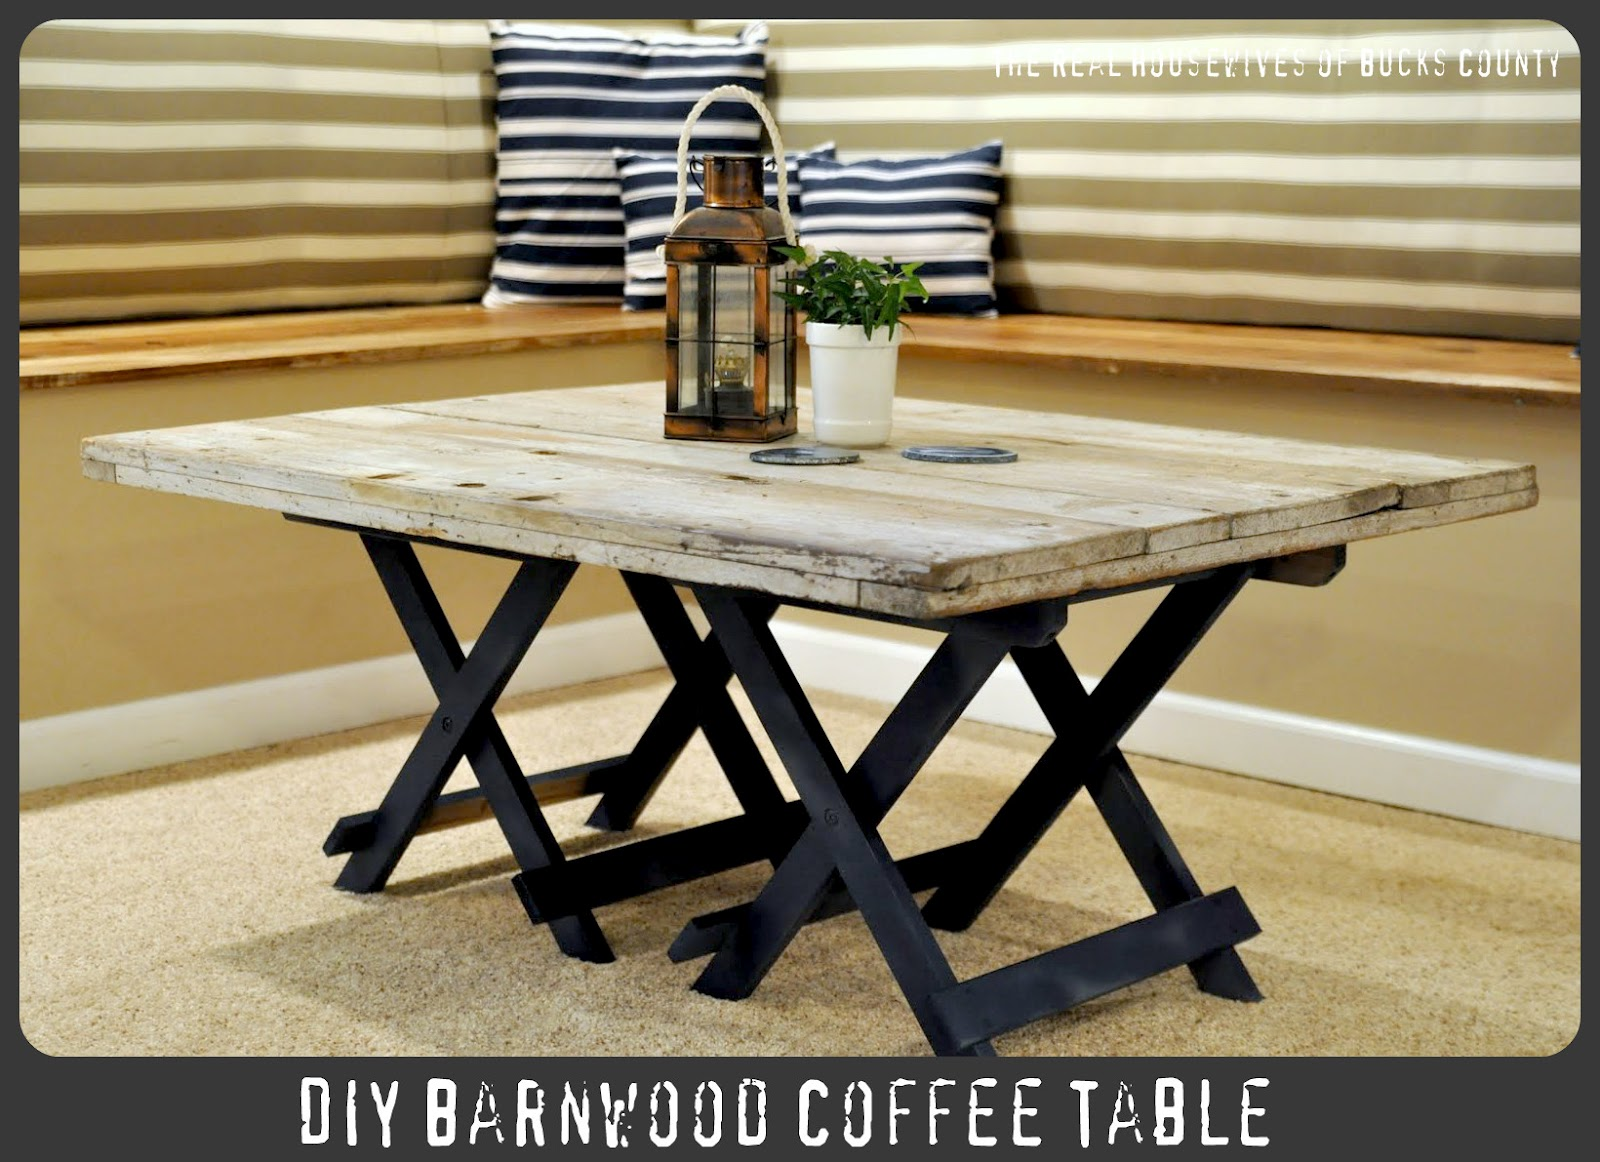 Reclaimed Barn Wood Furniture | at the galleria